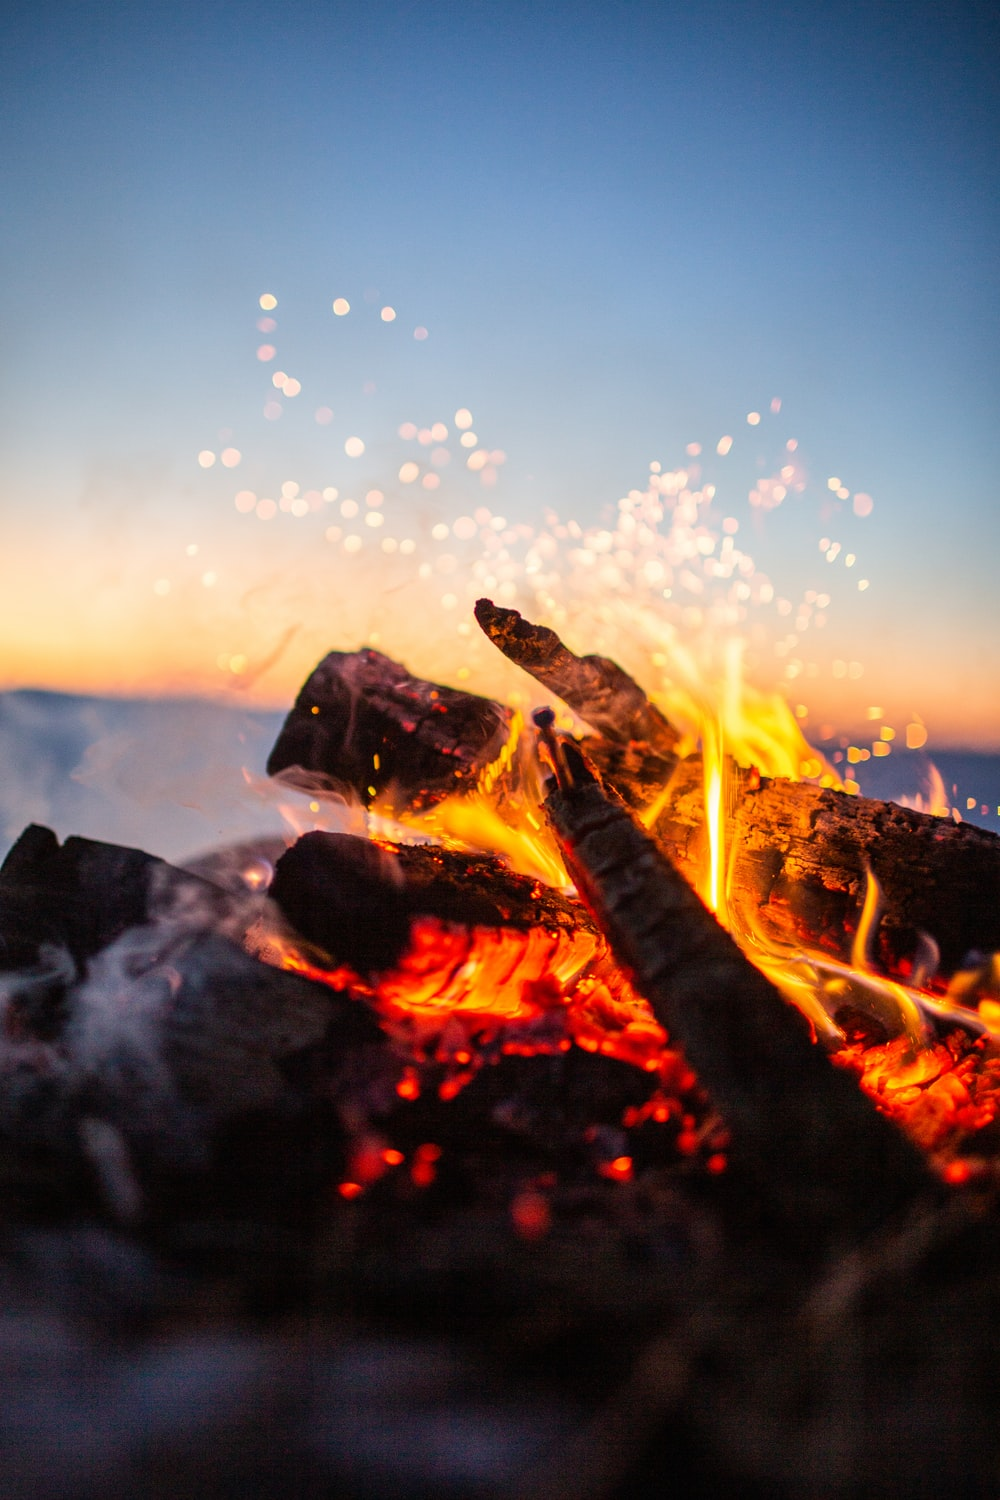 lit bonfire in closeup photography